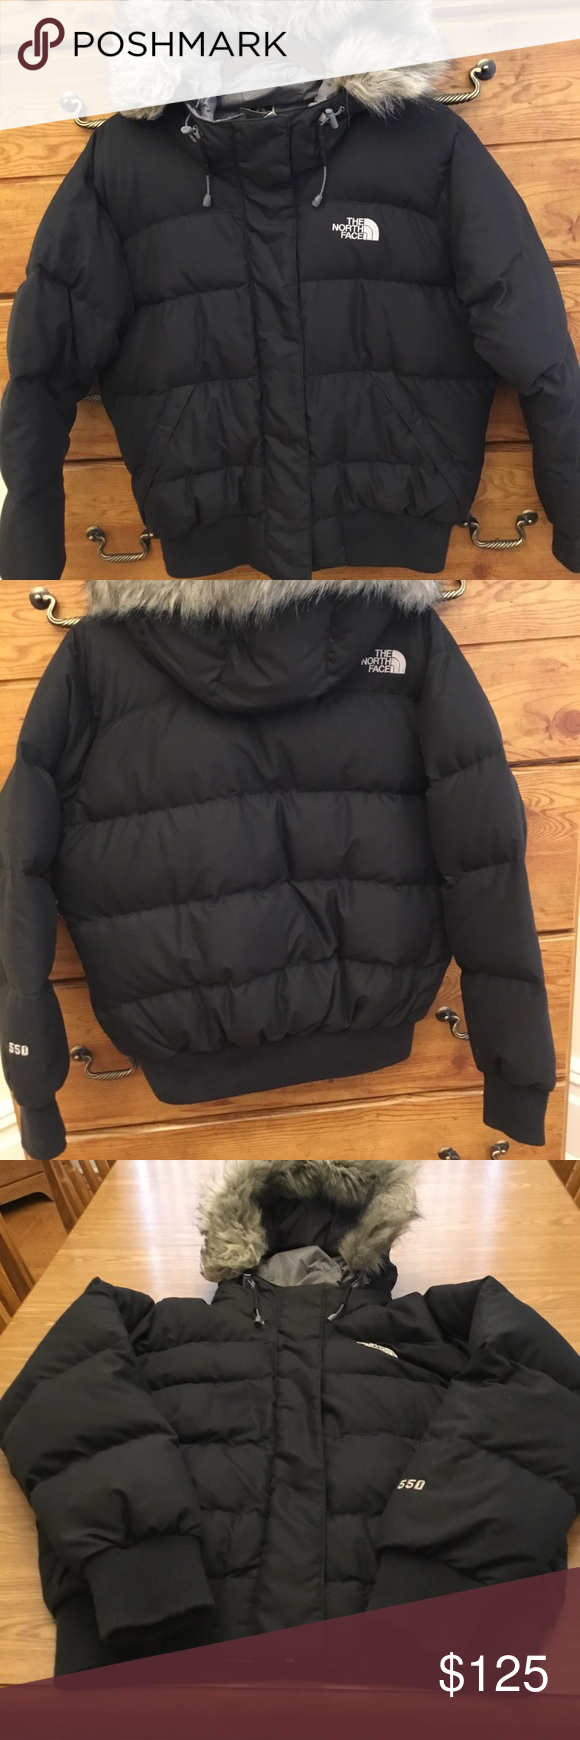 The North Face Women S Bomber Jacket North Face Women Jackets Bomber Jacket [ 1740 x 580 Pixel ]